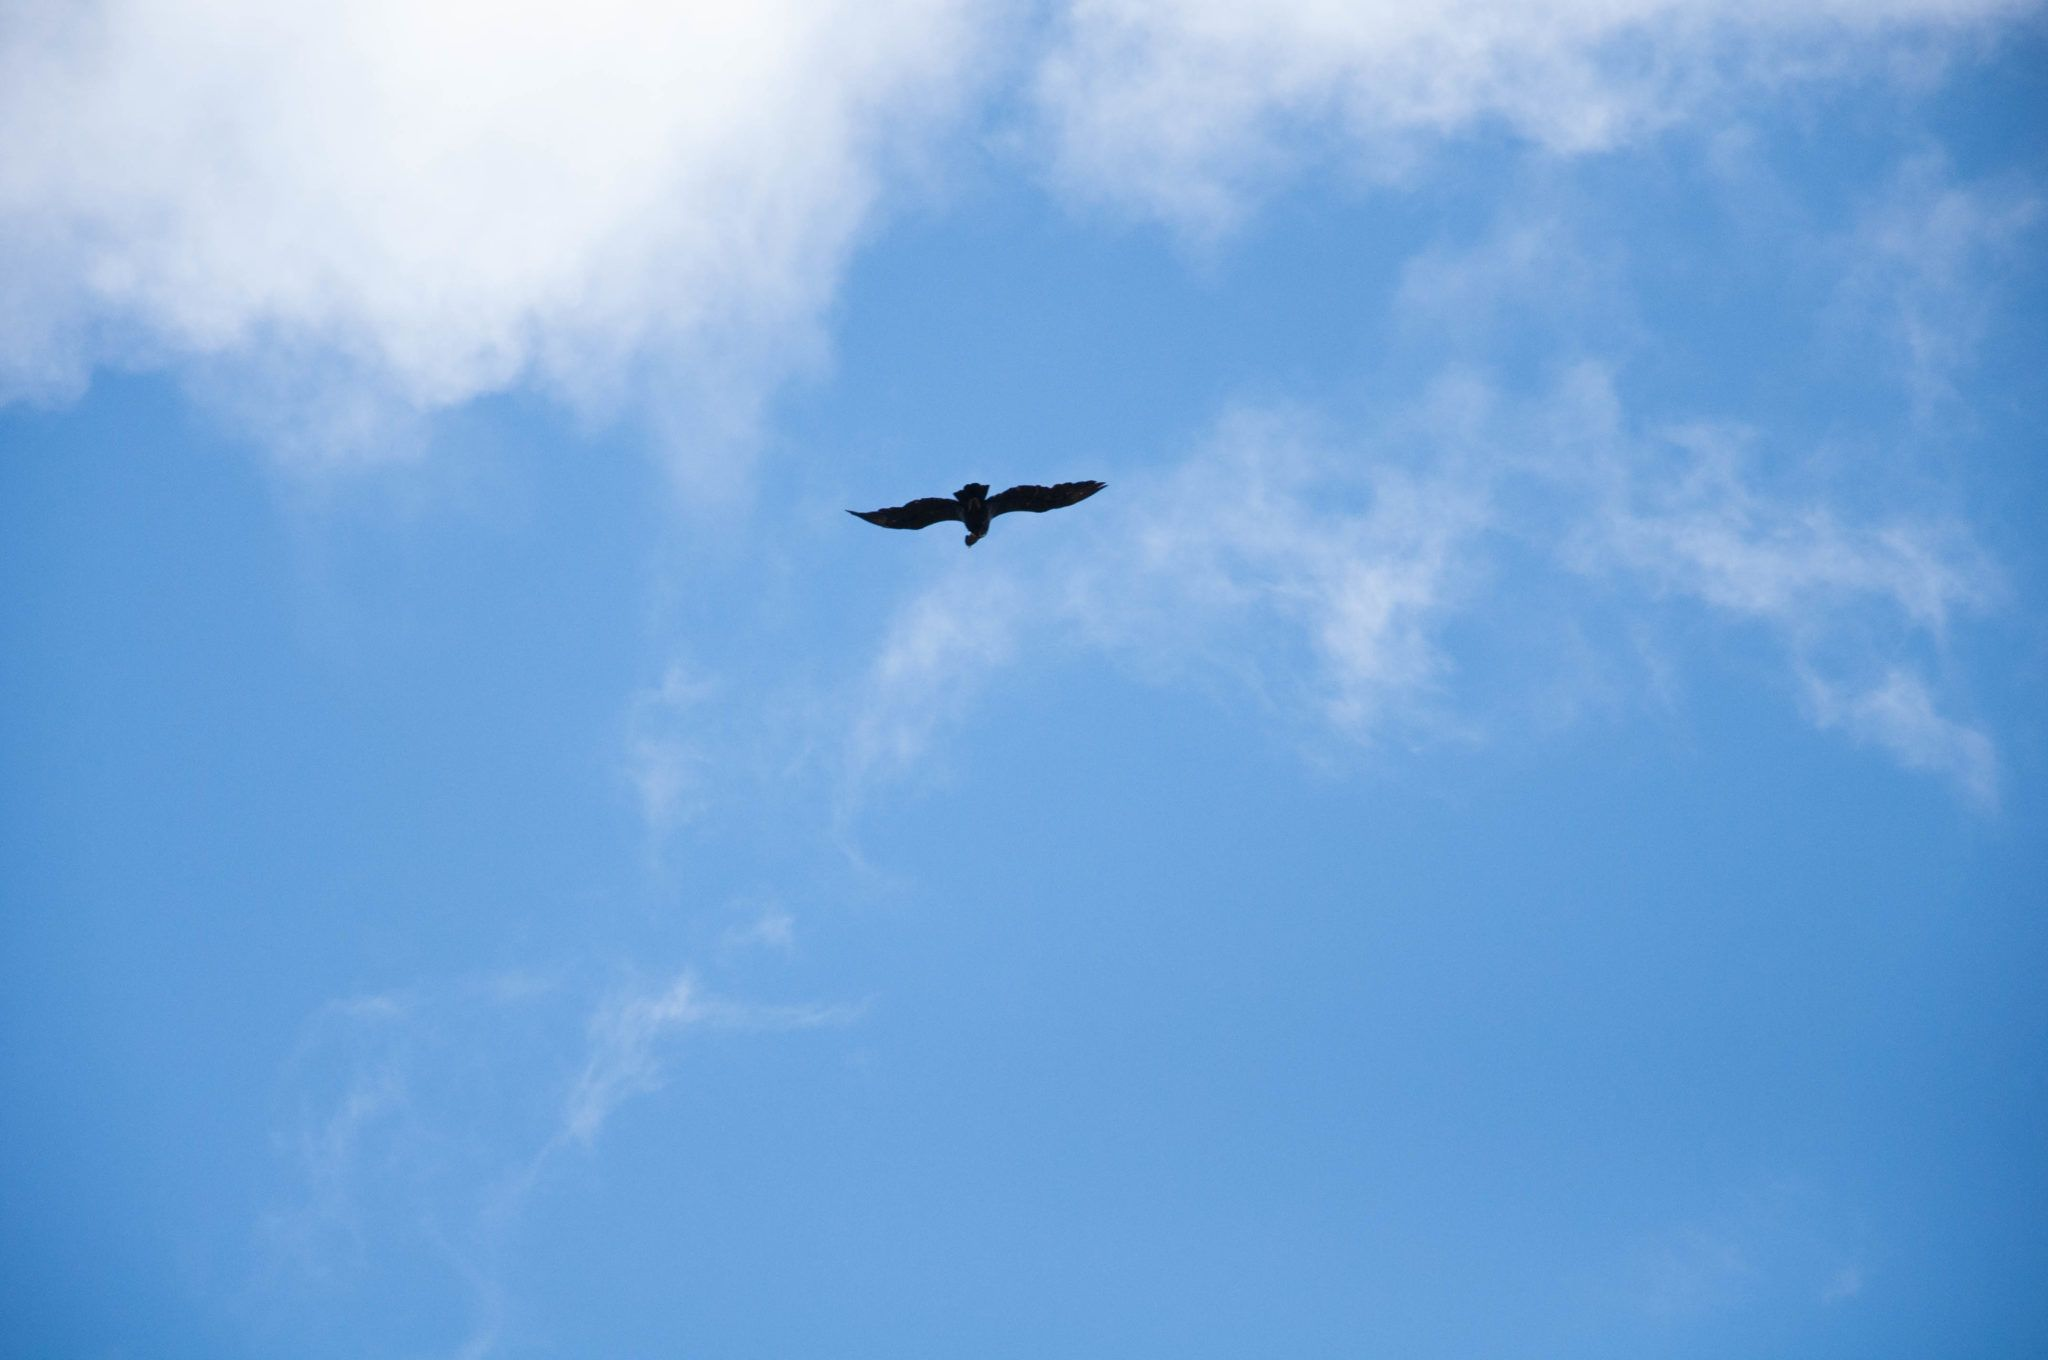 An Andean condor riding the thermals in the sky